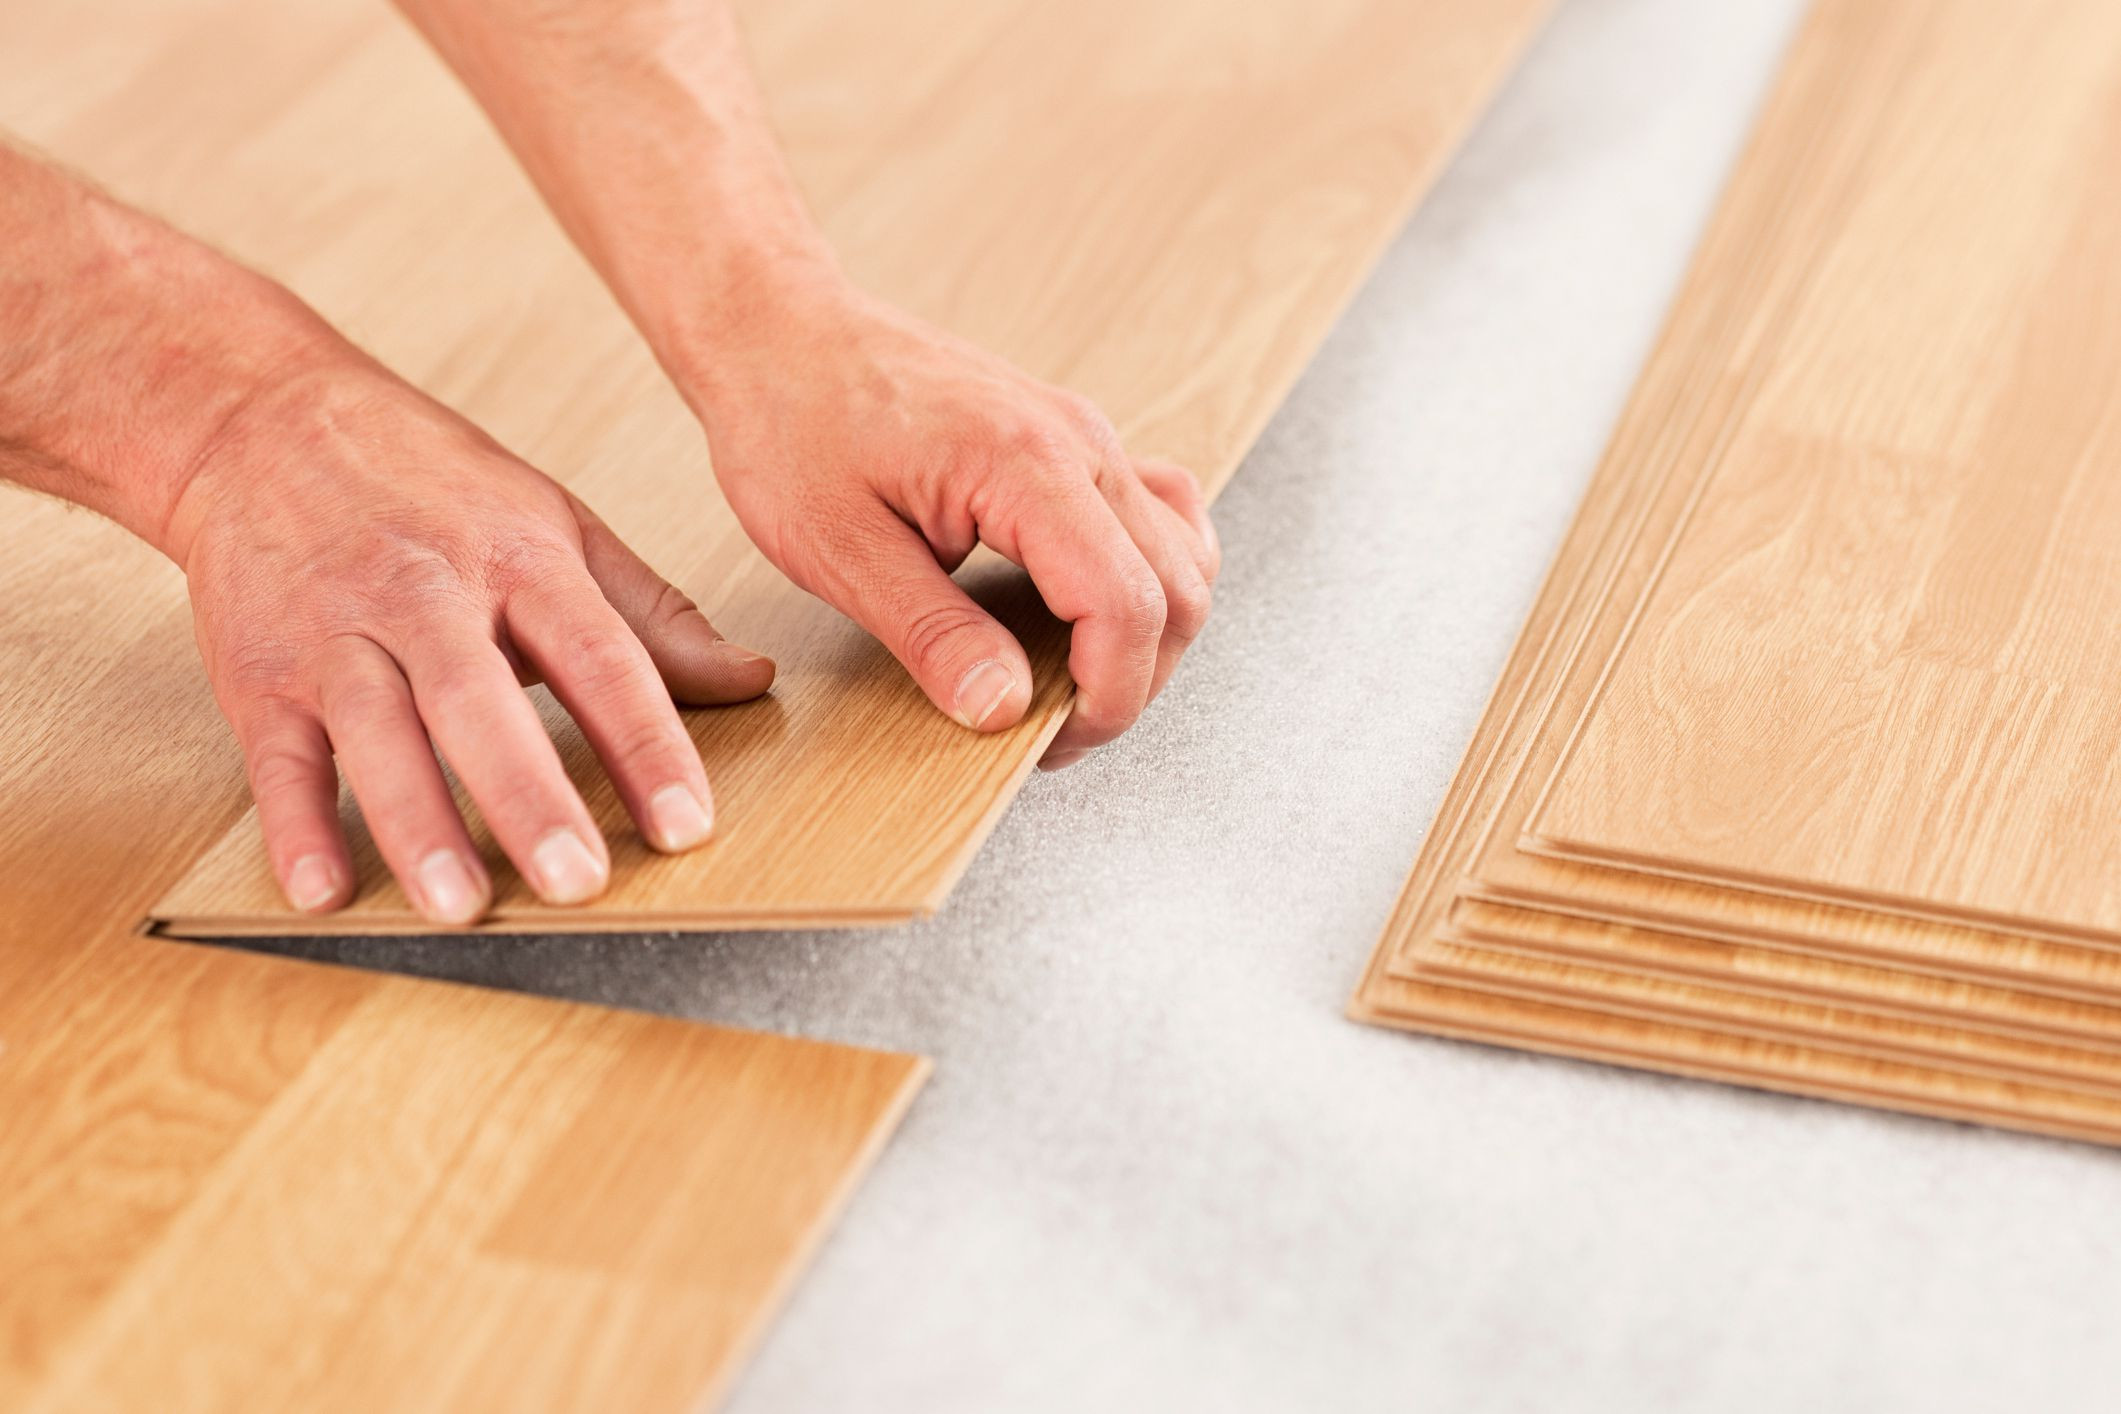 diy hardwood floor installation on concrete of laminate underlayment pros and cons inside laminate floor install gettyimages 154961561 588816495f9b58bdb3da1a02